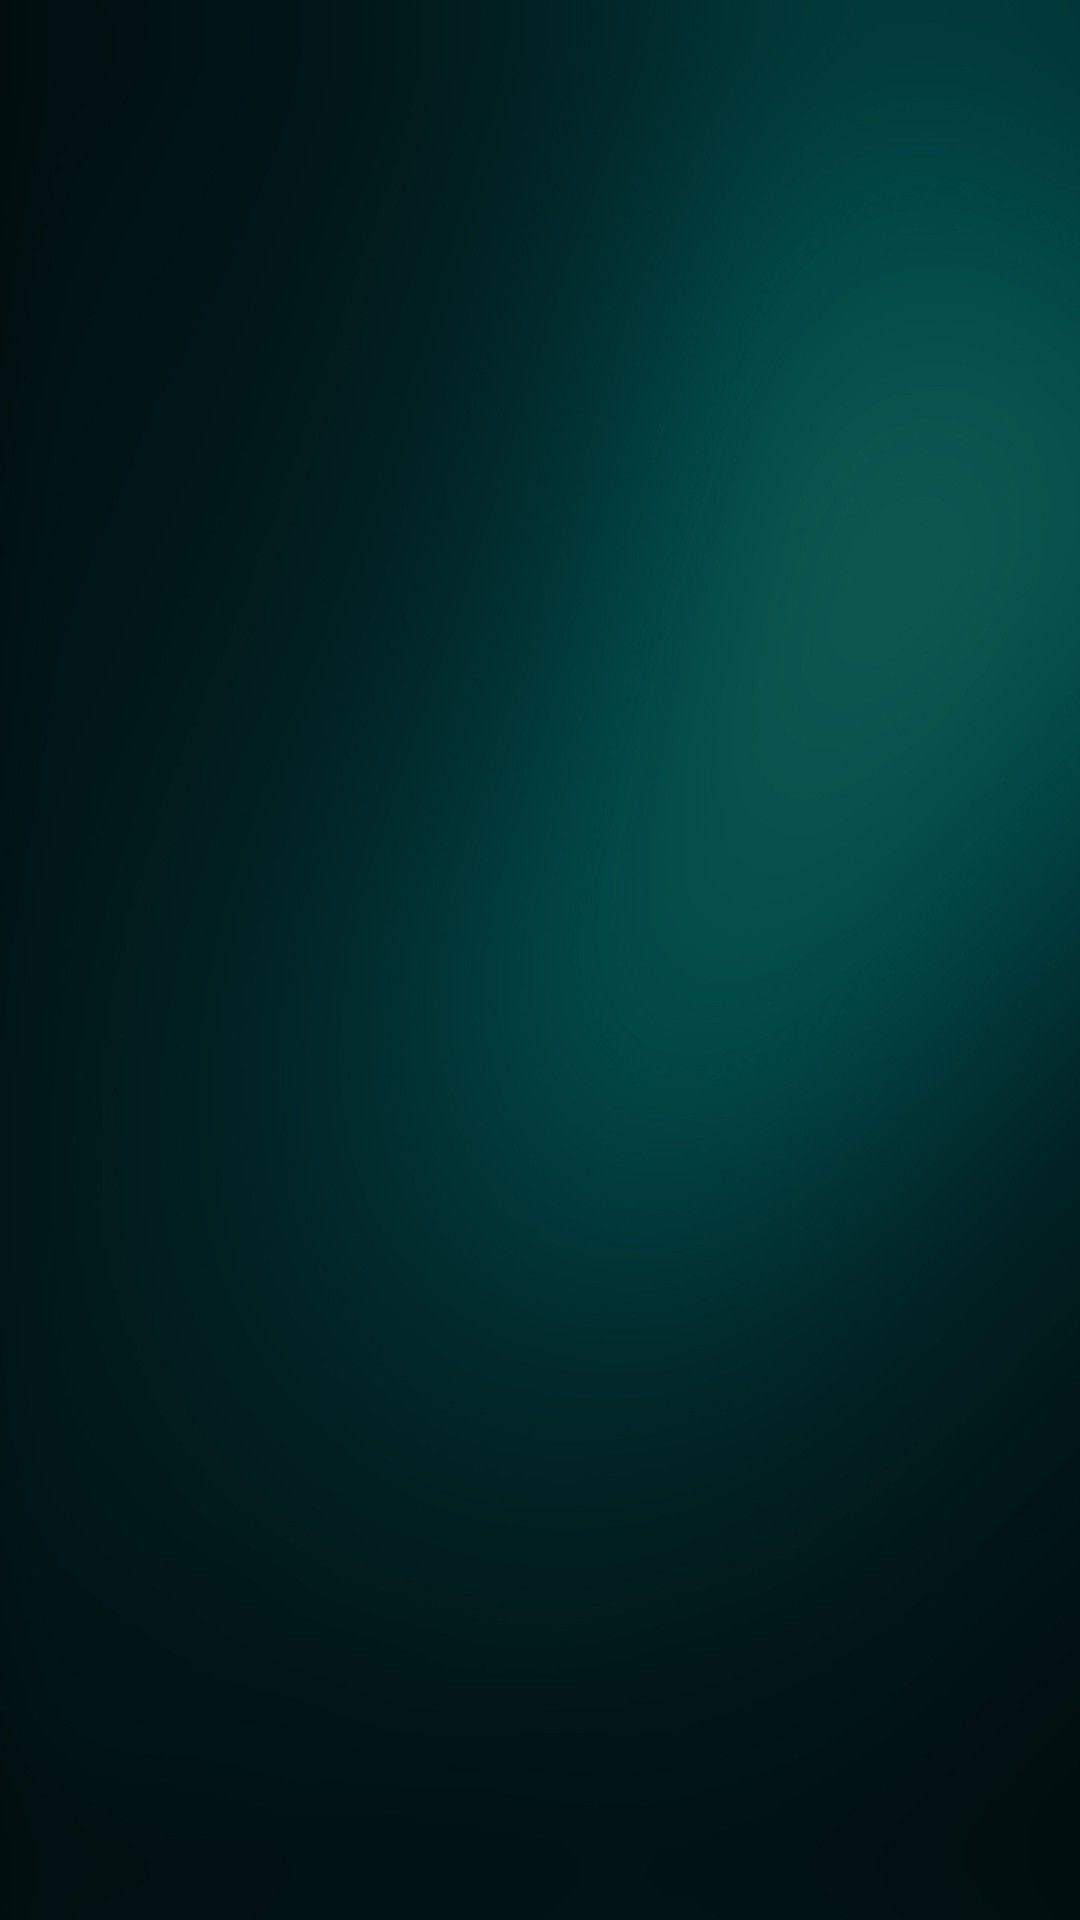 Dark Green Backgrounds 58 Pictures